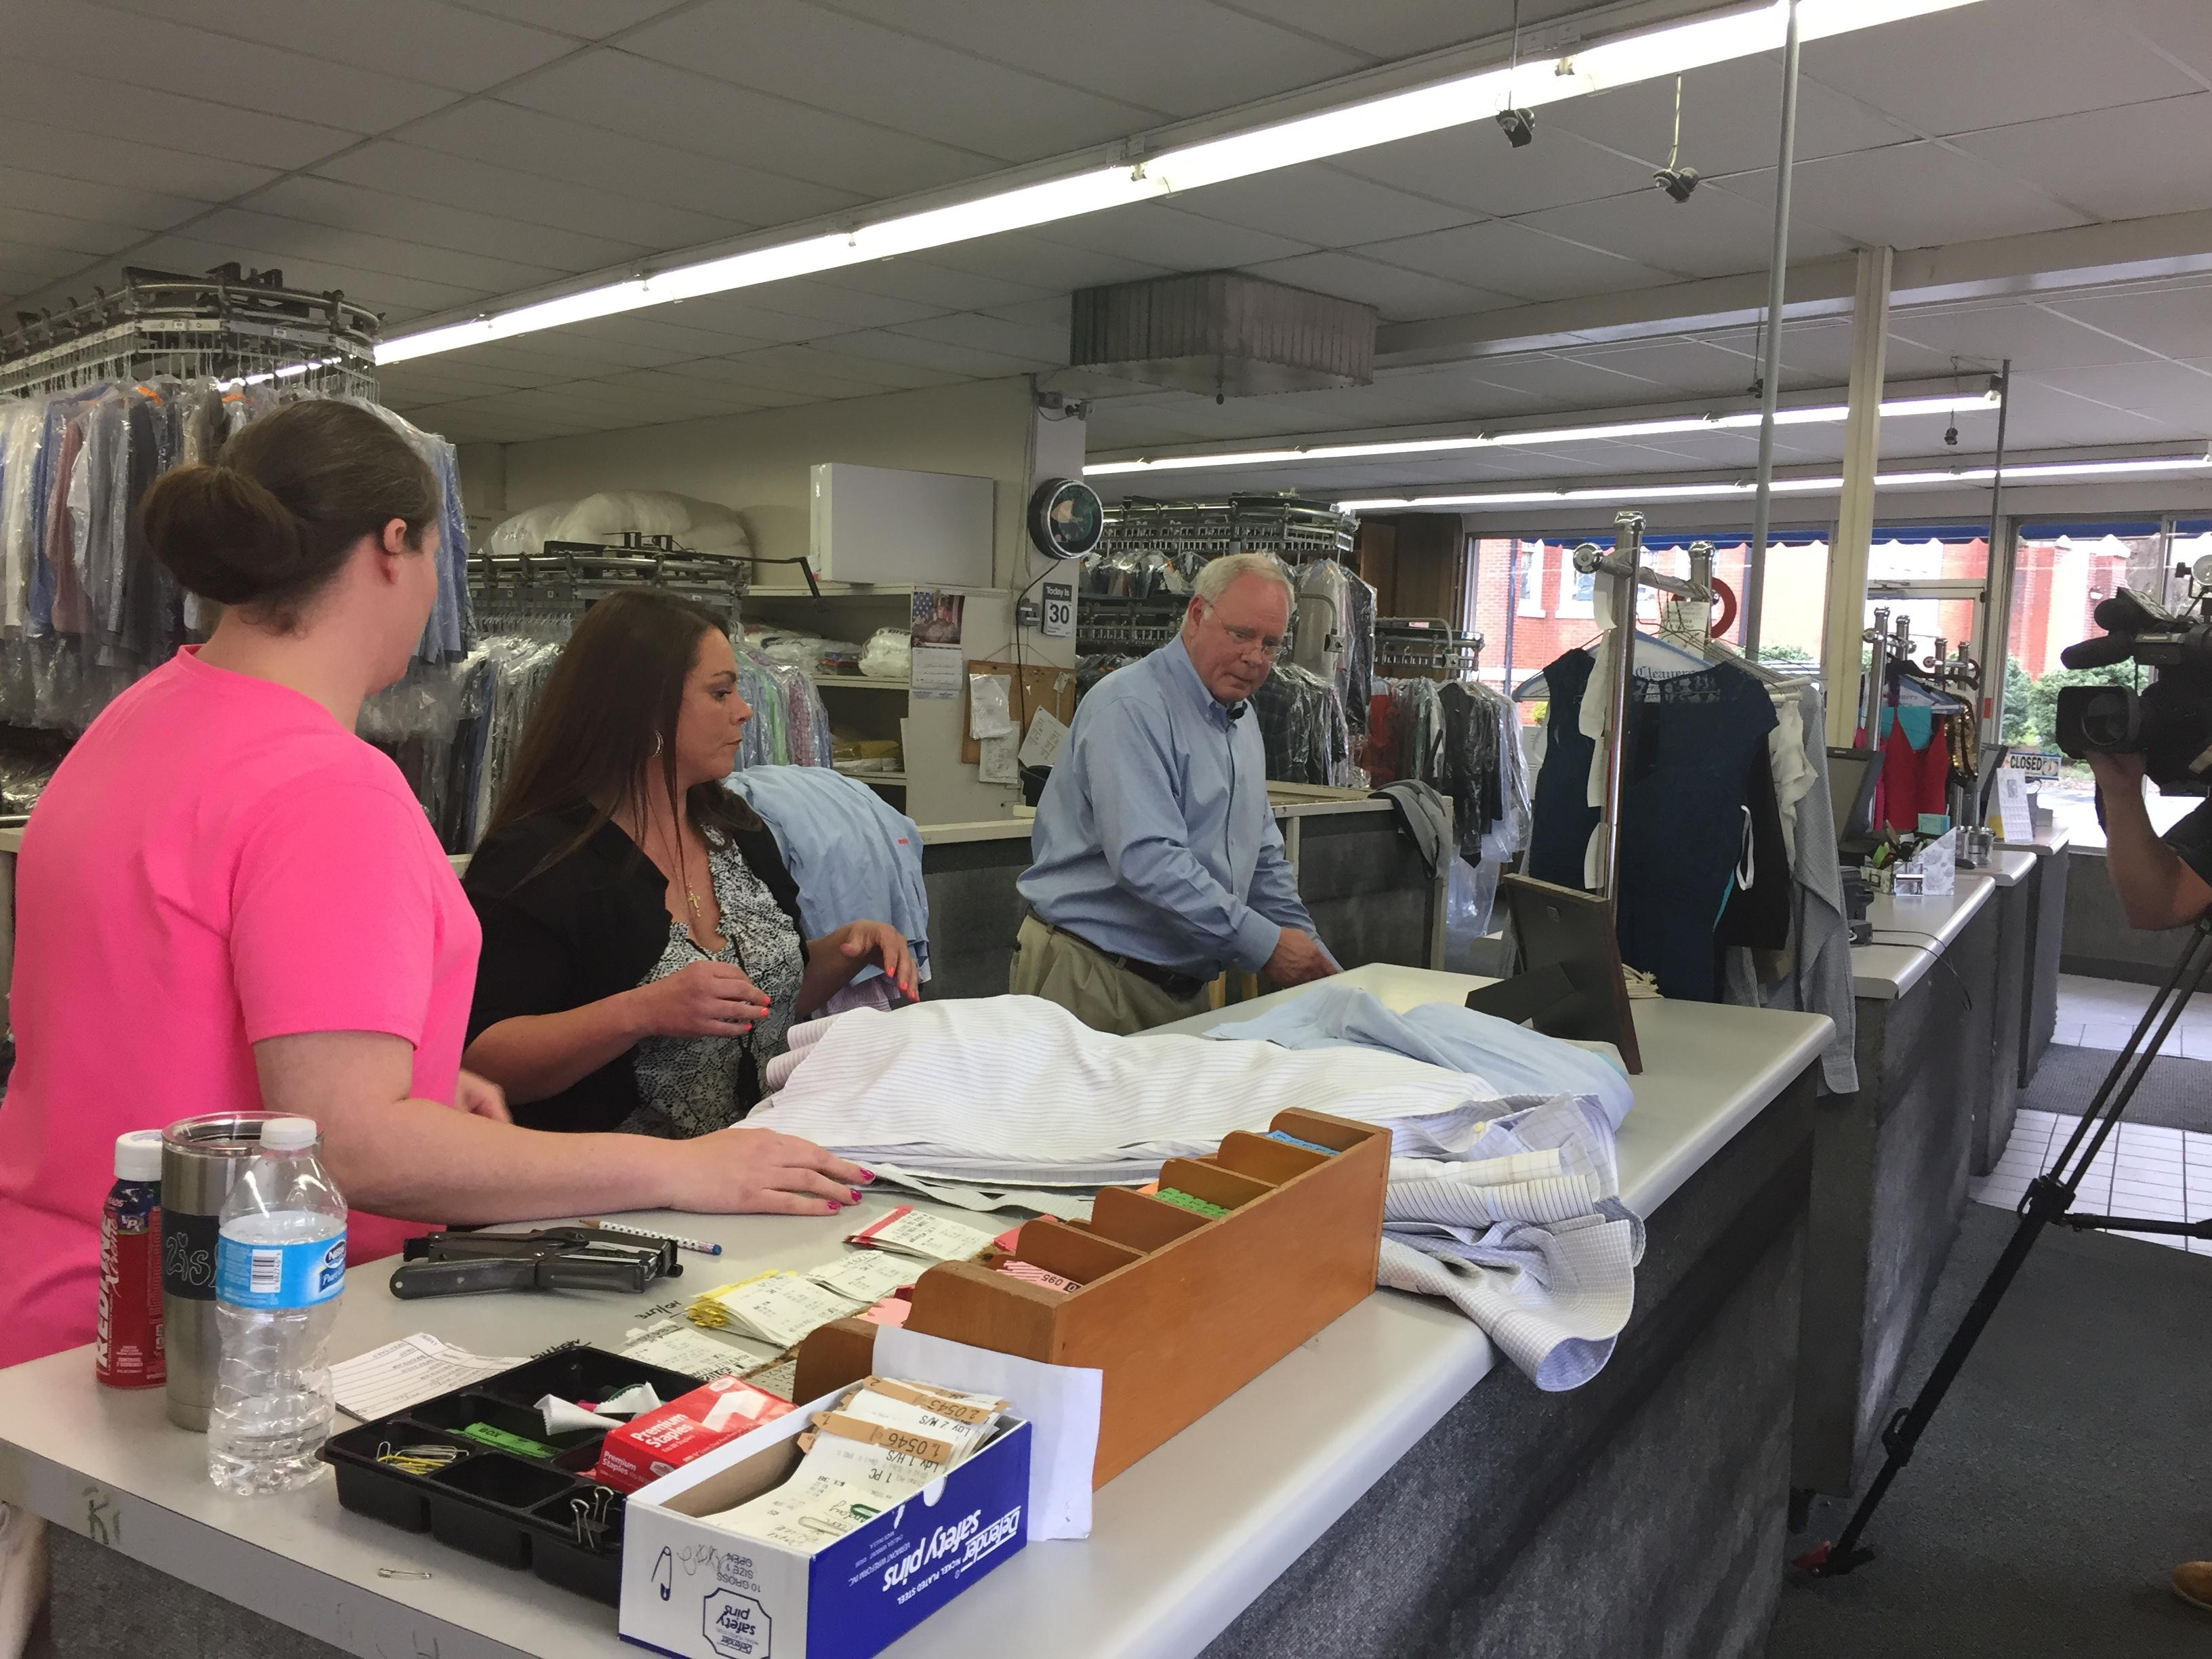 With the help of local businesses, Eblen collects 800 dresses. (Photo credit: John Le WLOS)